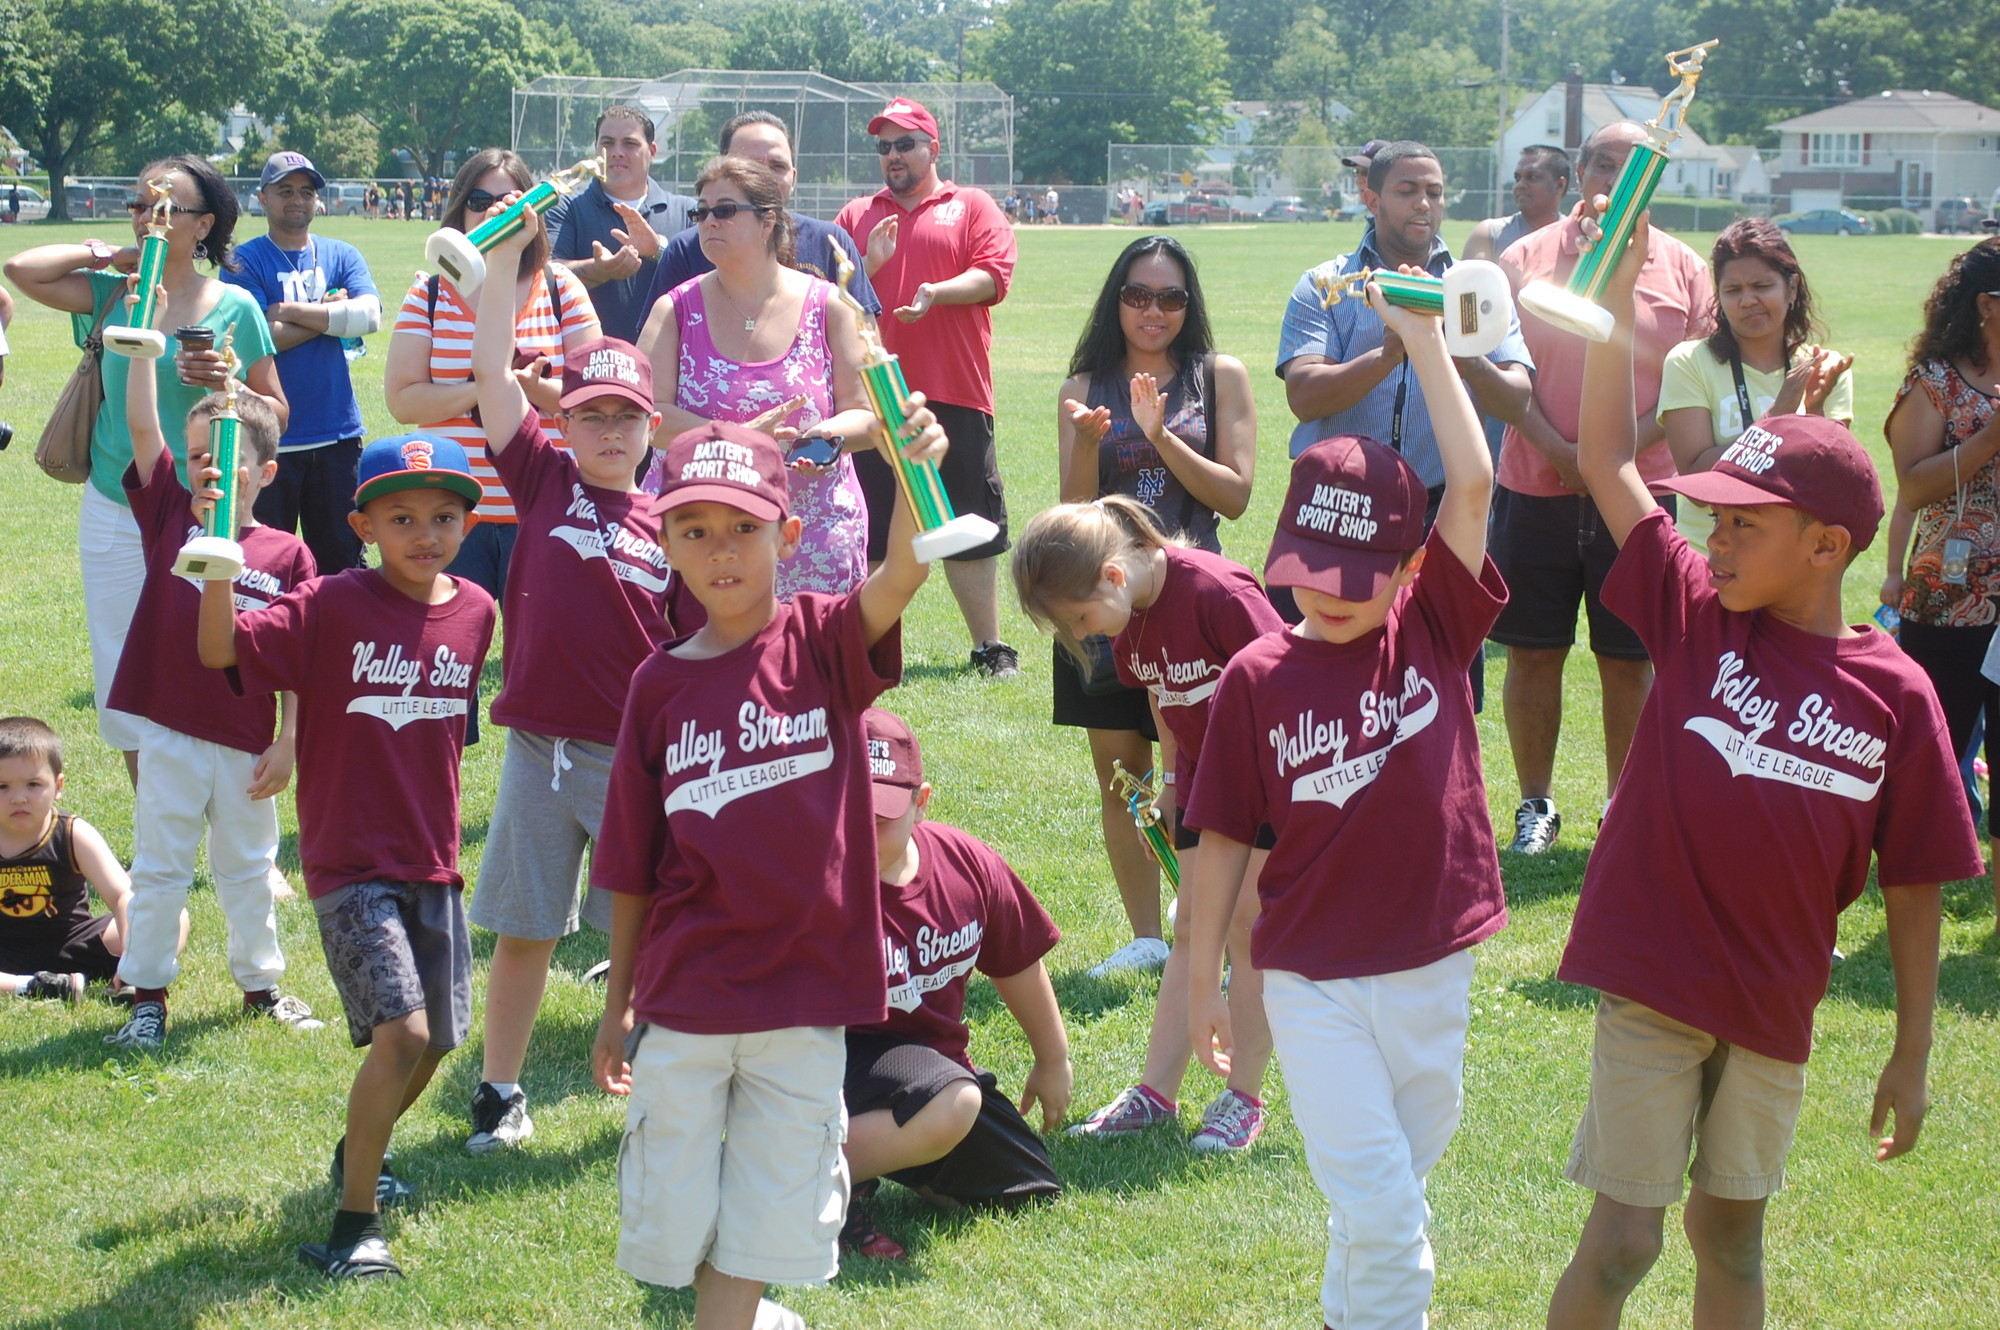 Players from The Valley Stream Little League received their trophies last Saturday morning at Firemen's Field to mark the end of the 2013 season.